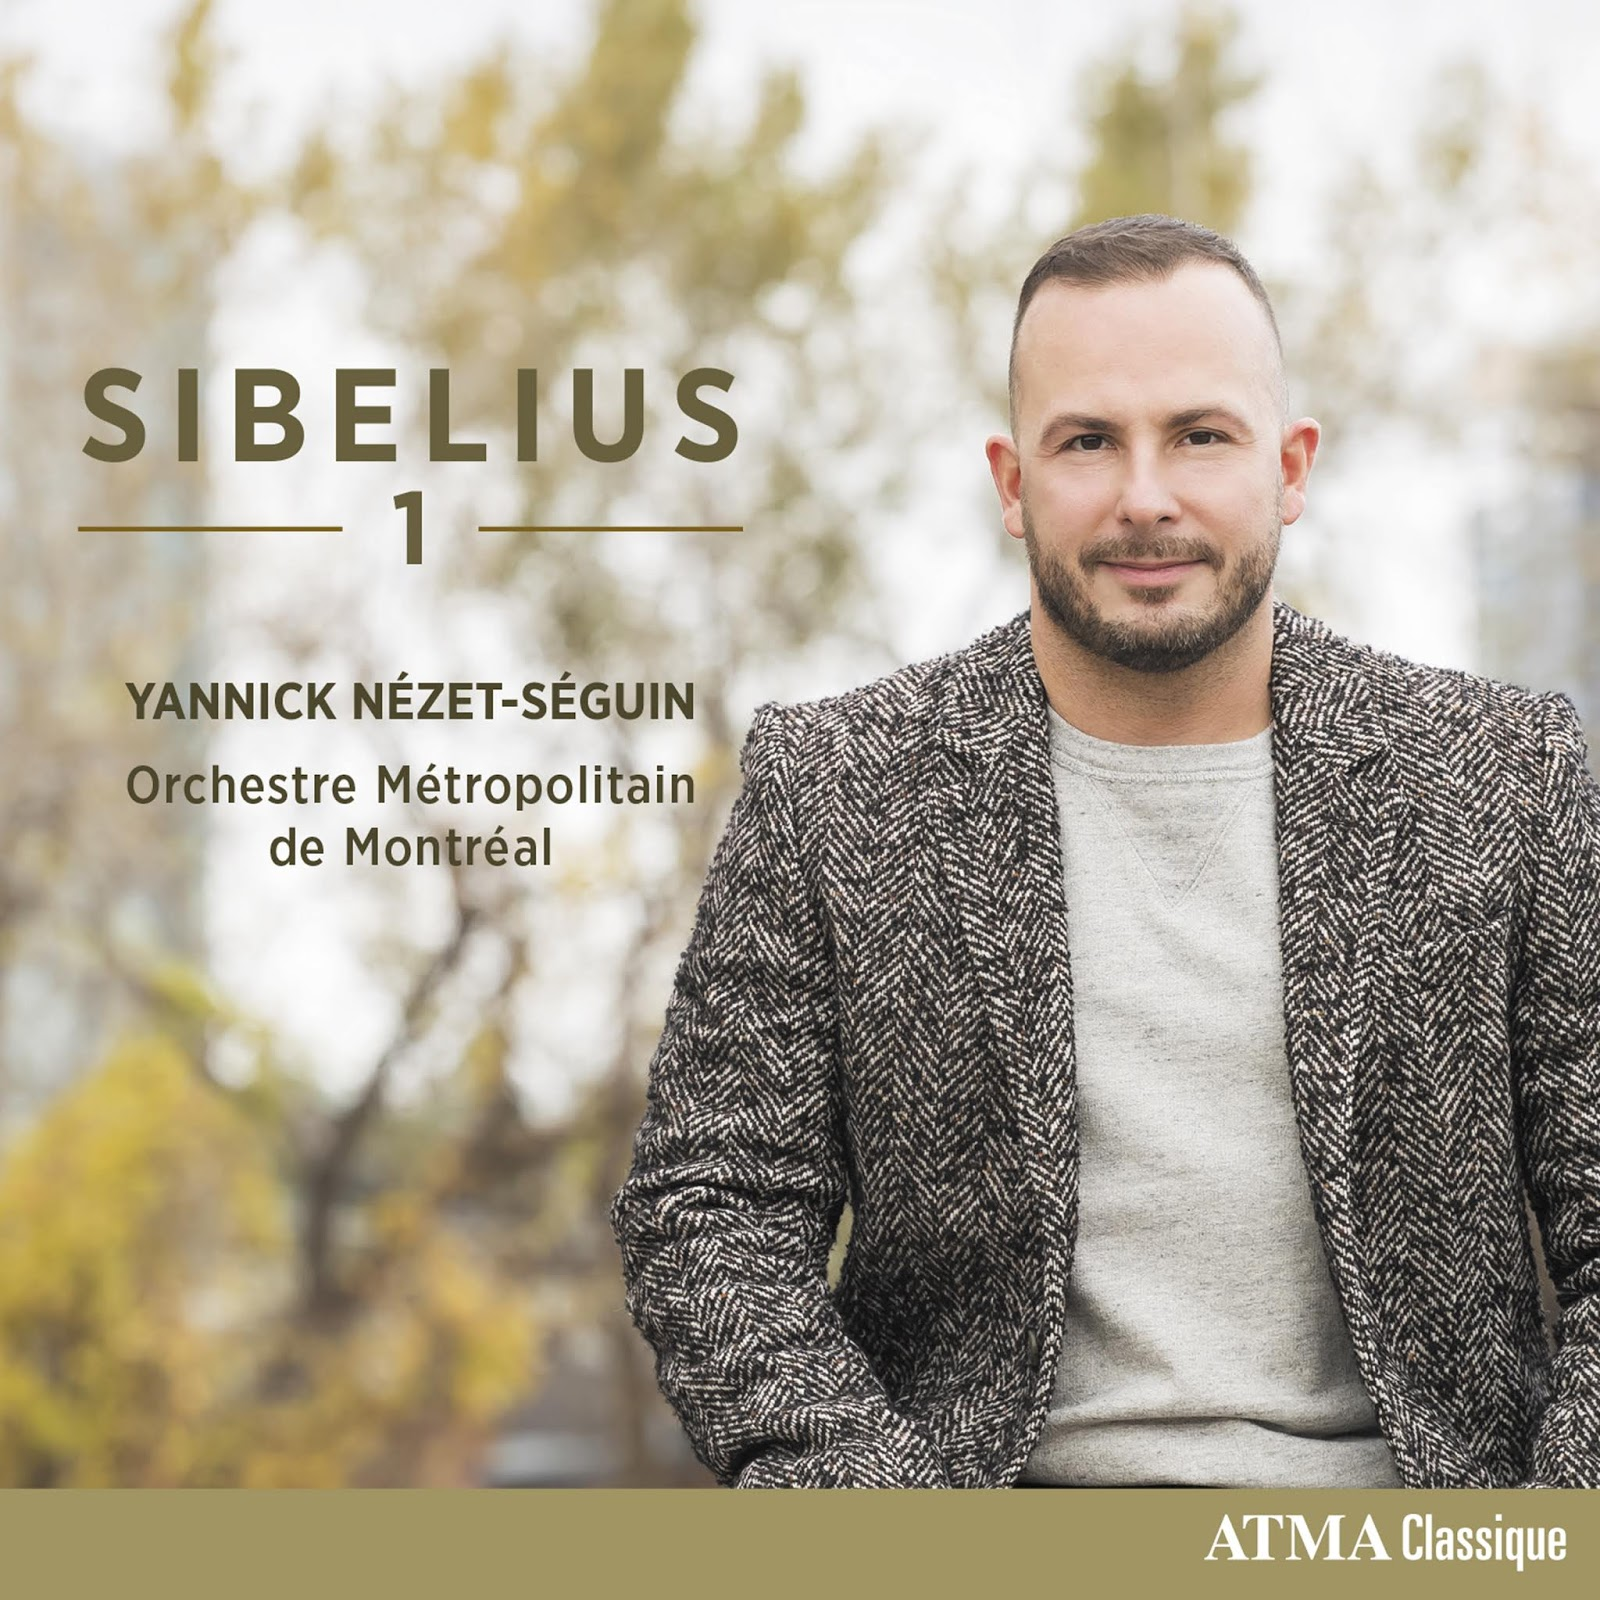 IN REVIEW: Jean Sibelius - SYMPHONY NO. 1 (ATMA Classique ACD2 2452)